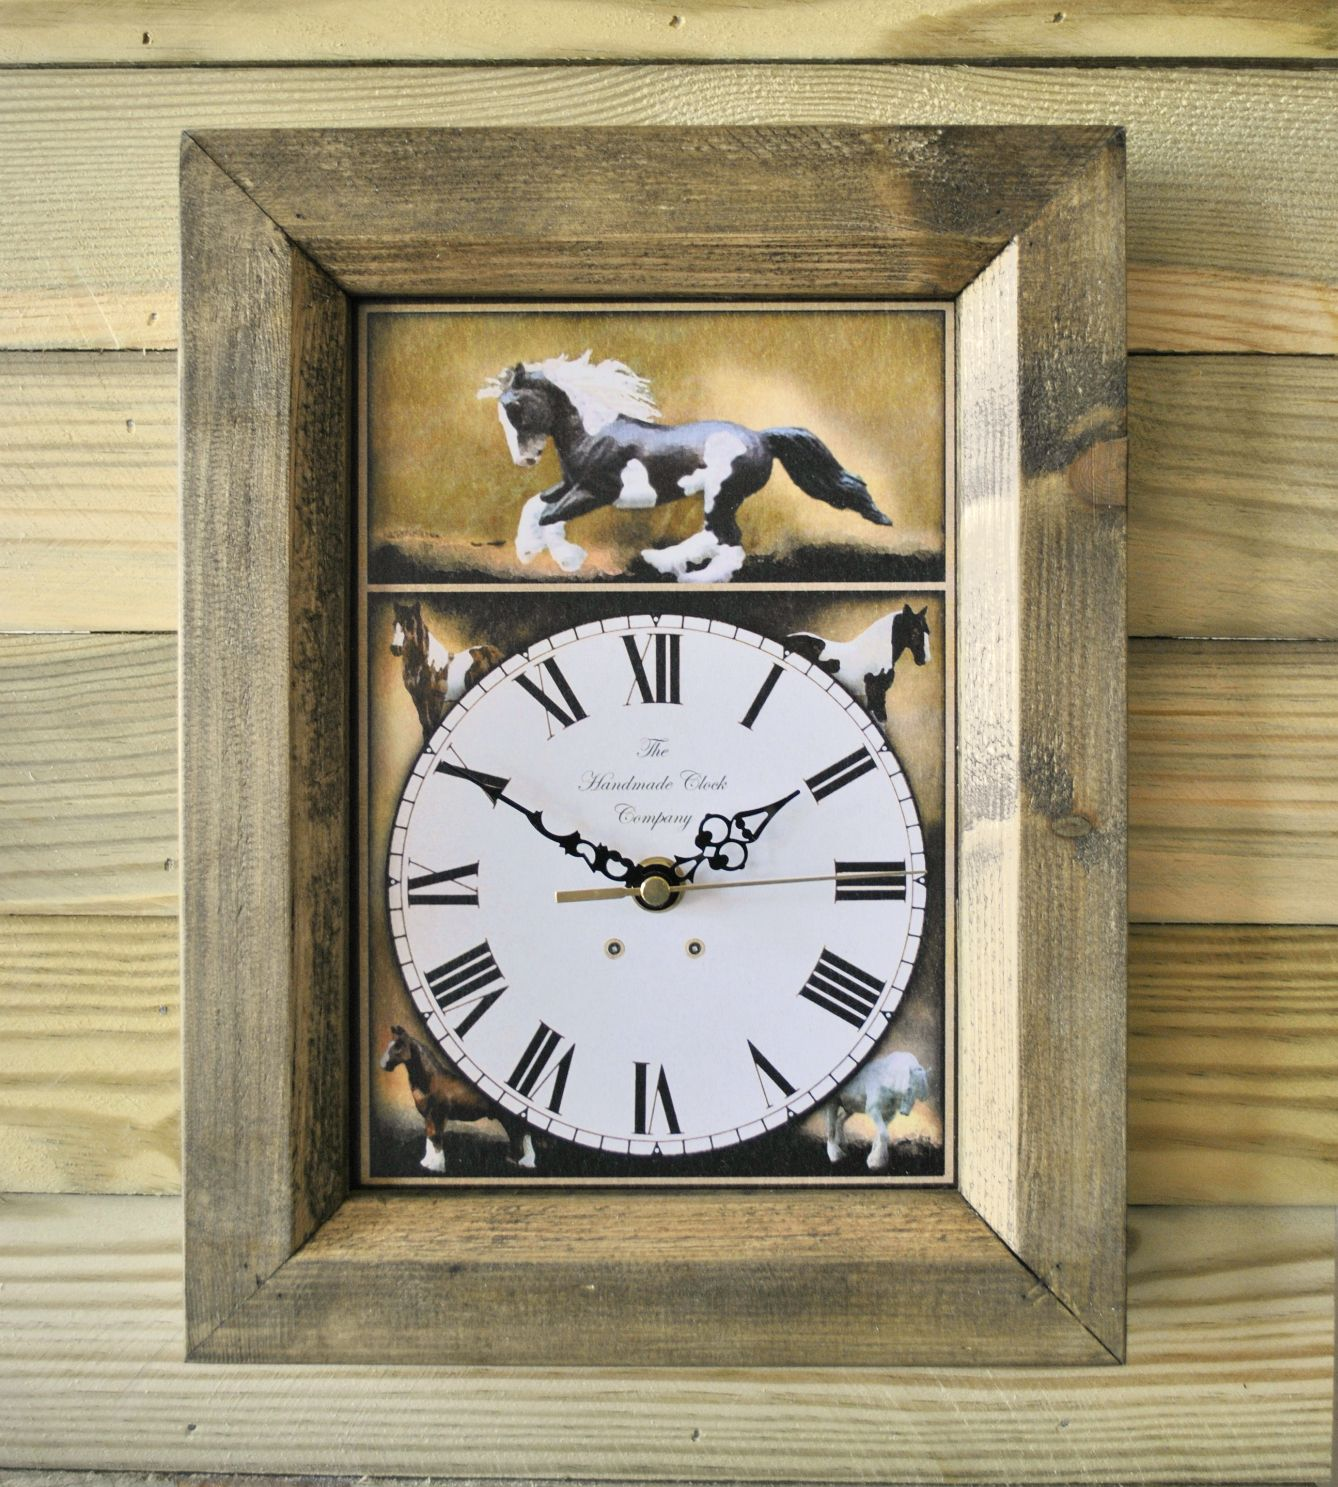 The handmade furniture company rustic gypsy cob handmade wooden the handmade furniture company rustic gypsy cob handmade wooden wall clock 1999 jeuxipadfo Images